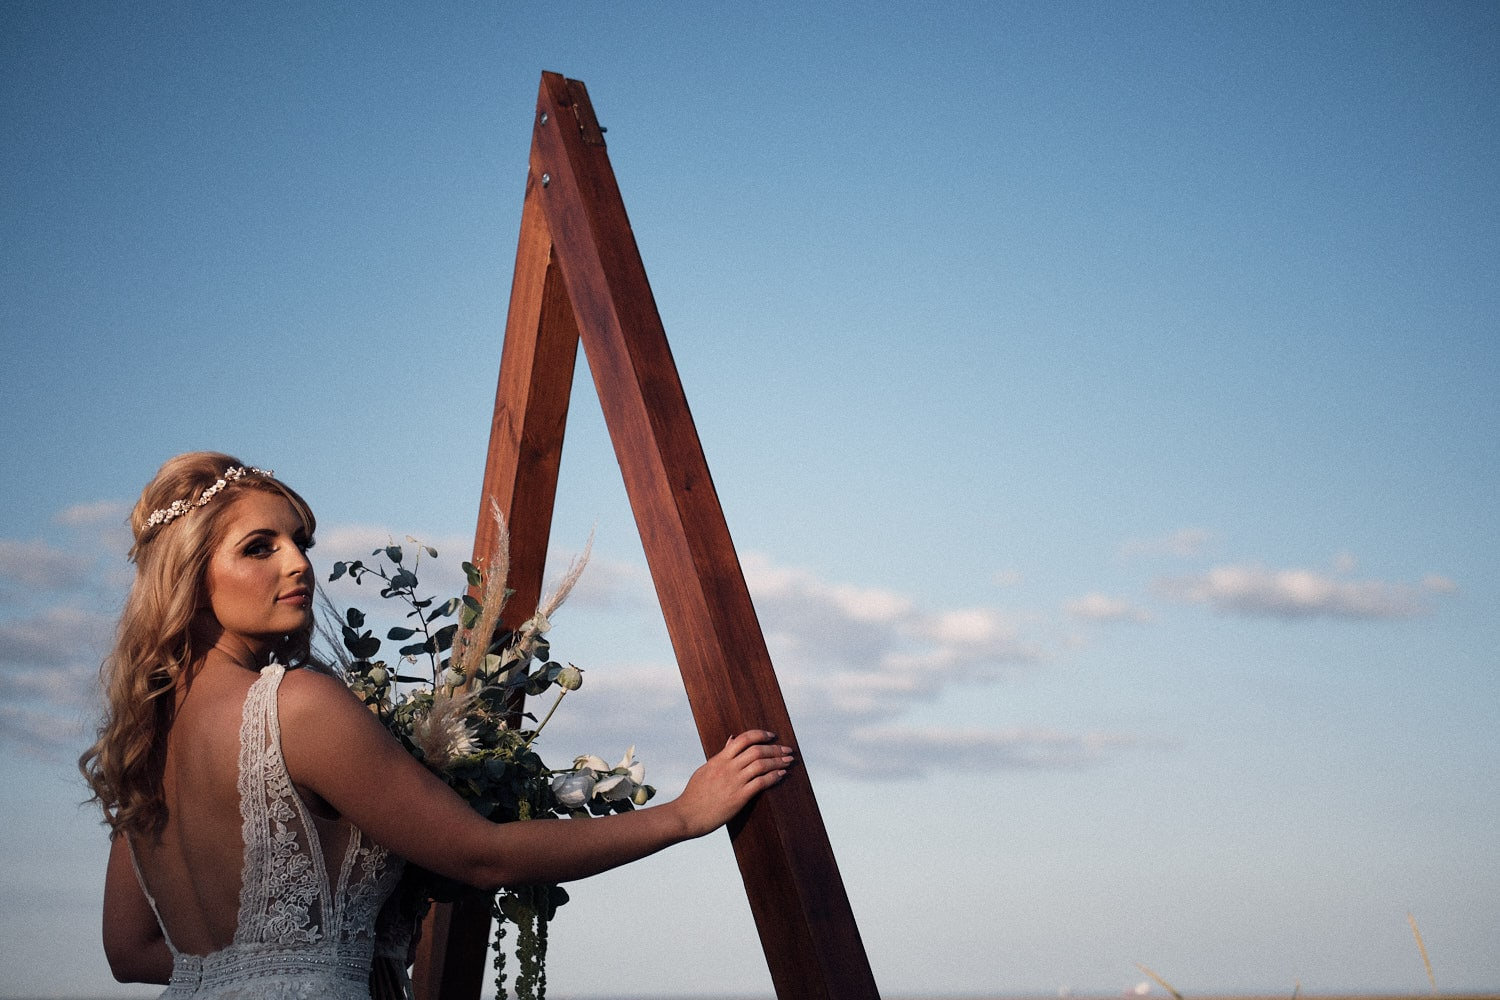 A bride poses against a wooden backdrop with a clear blue sky behind her